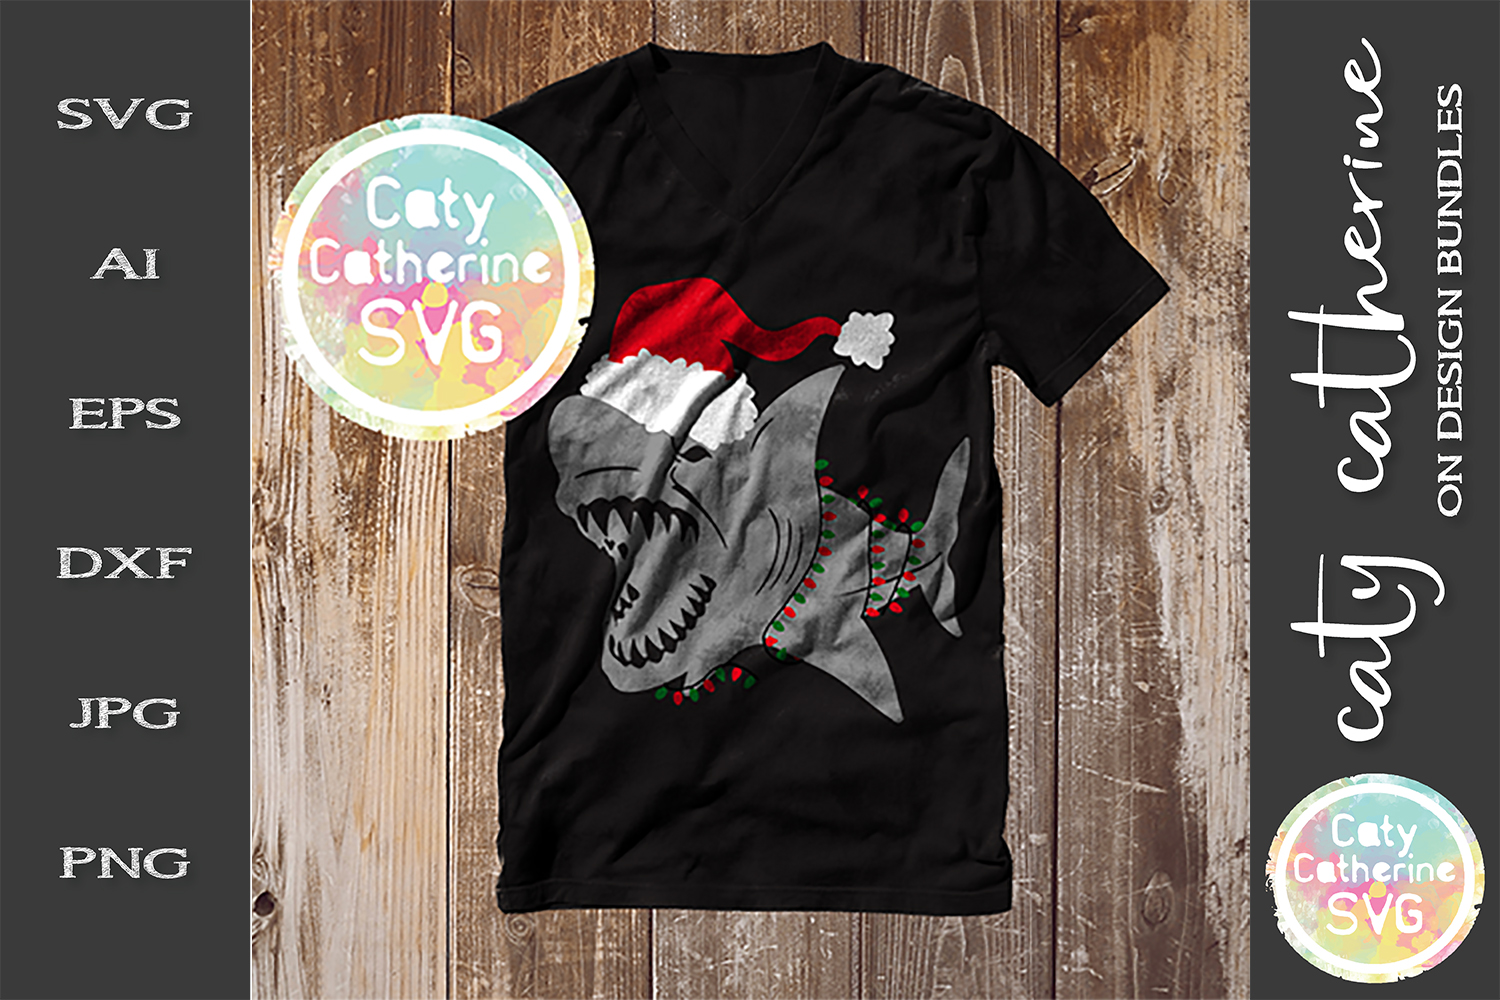 Shark Wearing Santa Hat & Fairy Lights SVG Cut File example image 1